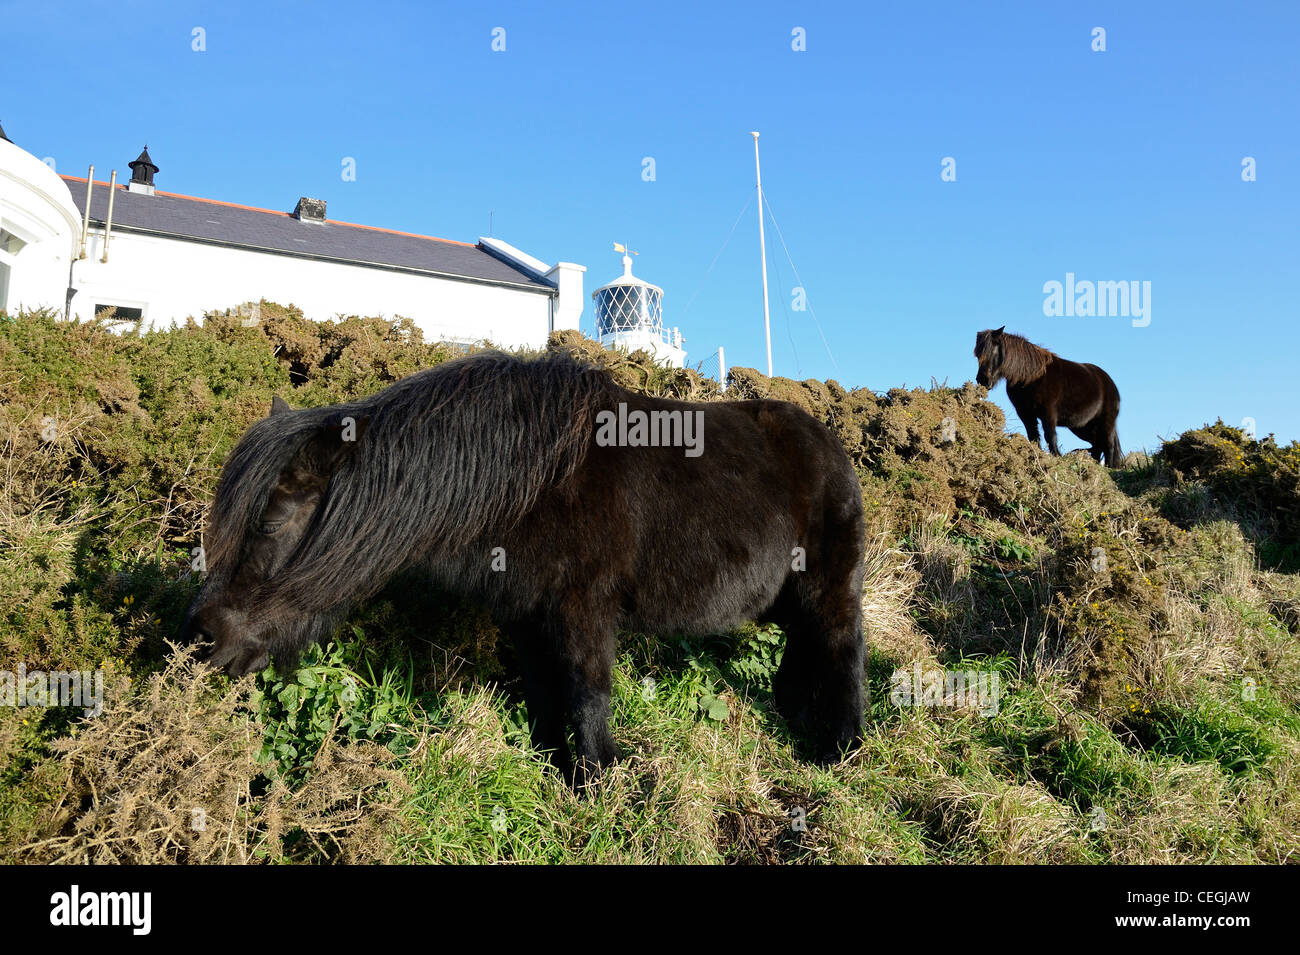 Dartmoor ponies on the Lizard peninsular in Cornwall, the ponies are used for conservation grazing, bracken and - Stock Image